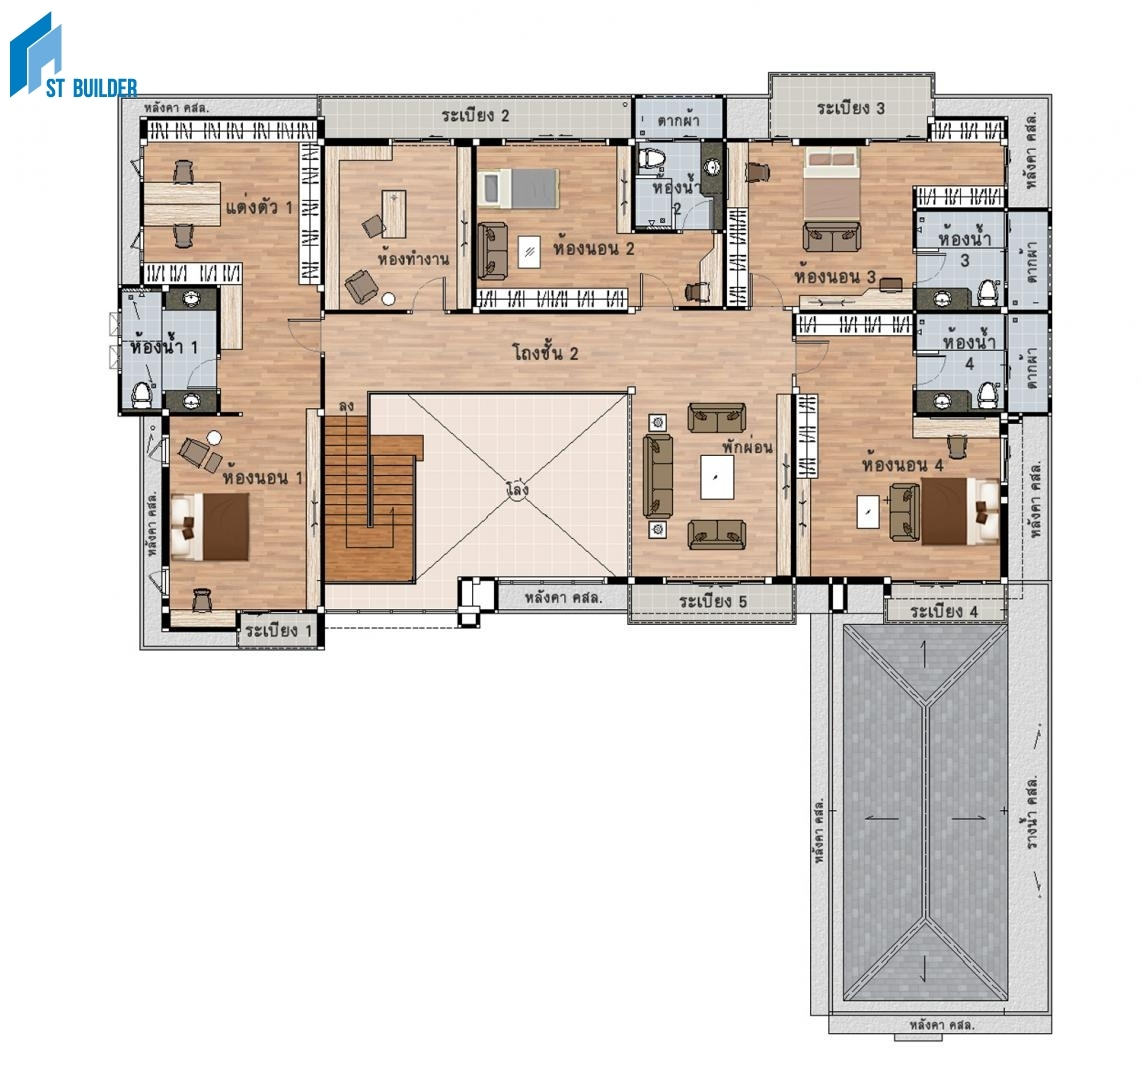 STC-205 Floor plan 2